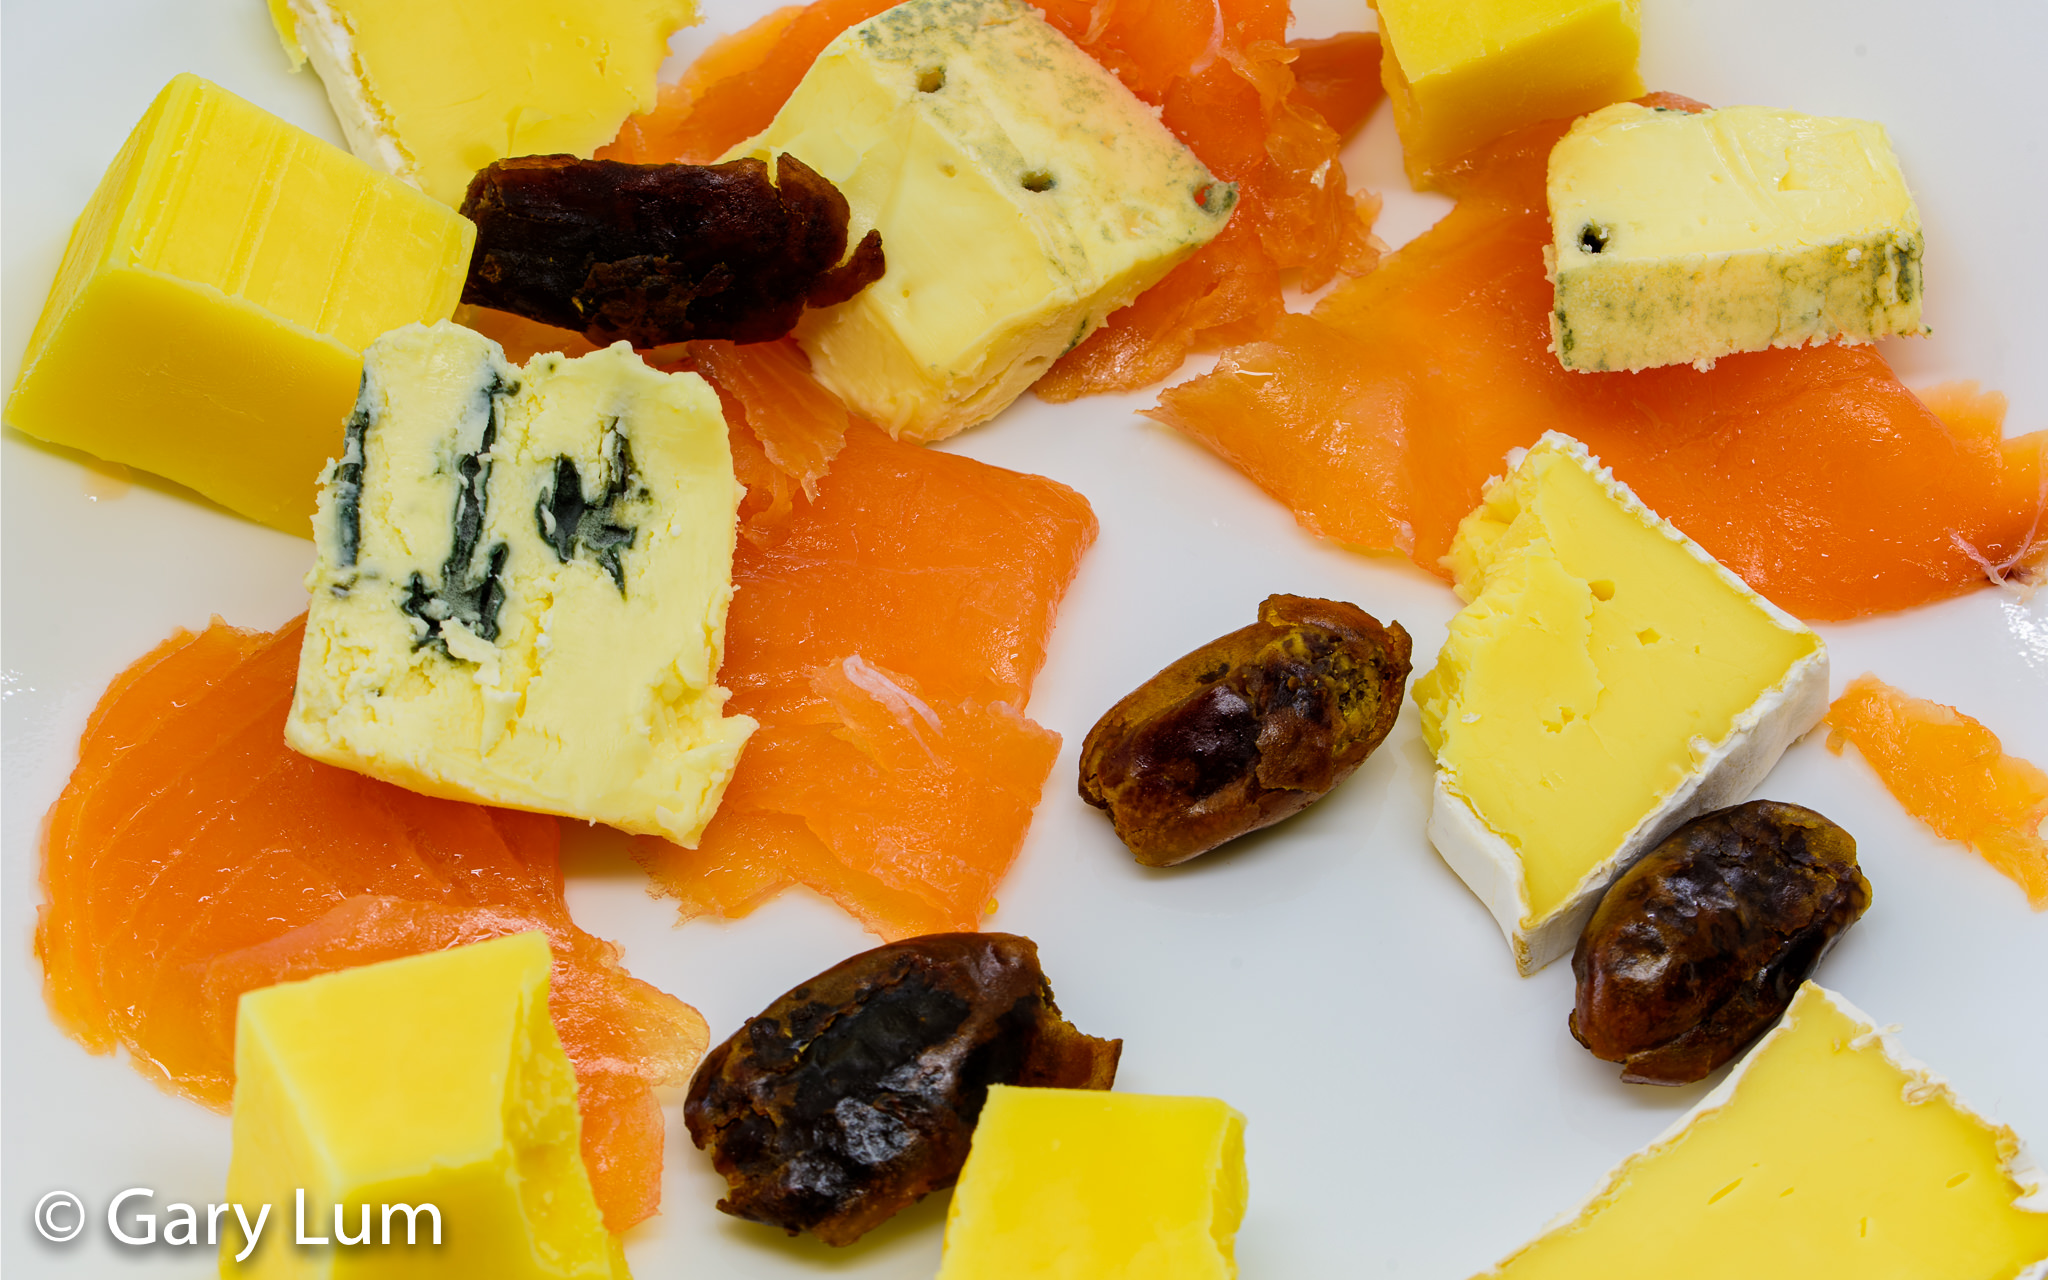 Smoked salmon with Coon™ cheese, Brie, Blue cheese, and Dates. Gary Lum.